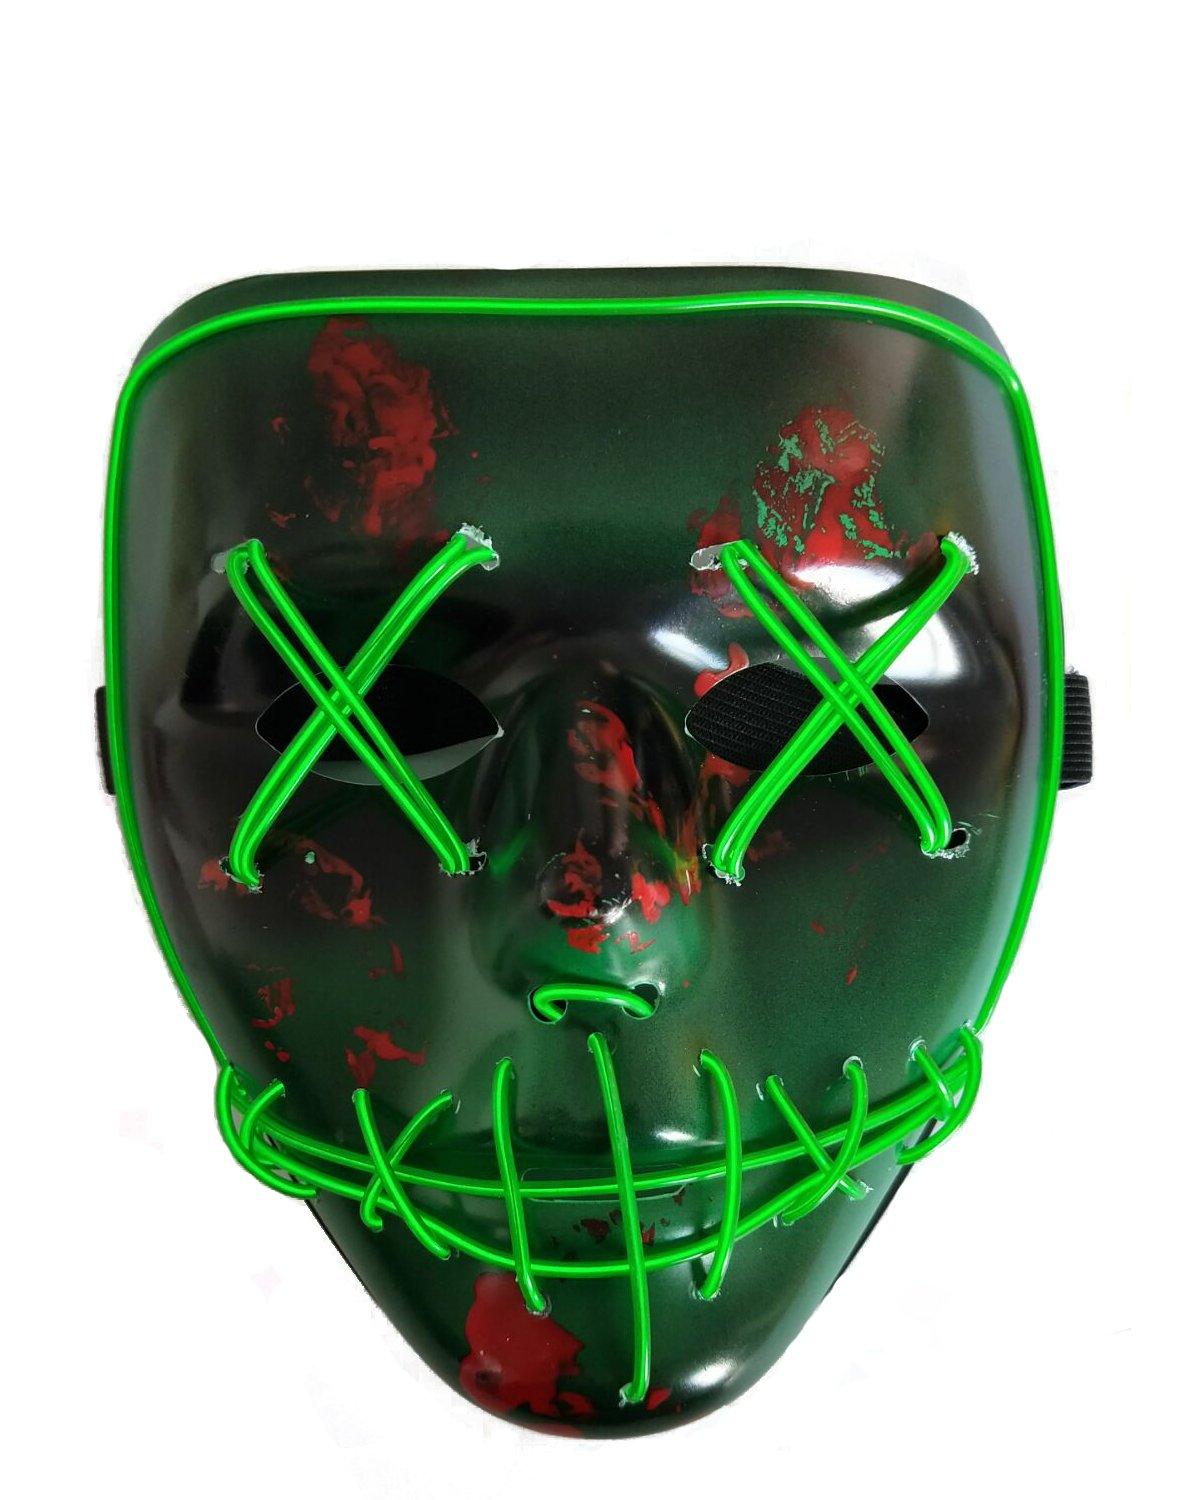 NIGHT-GRING Halloween Scary Mask Cosplay Led Mask EL Wire Light up for Festival Costume Party